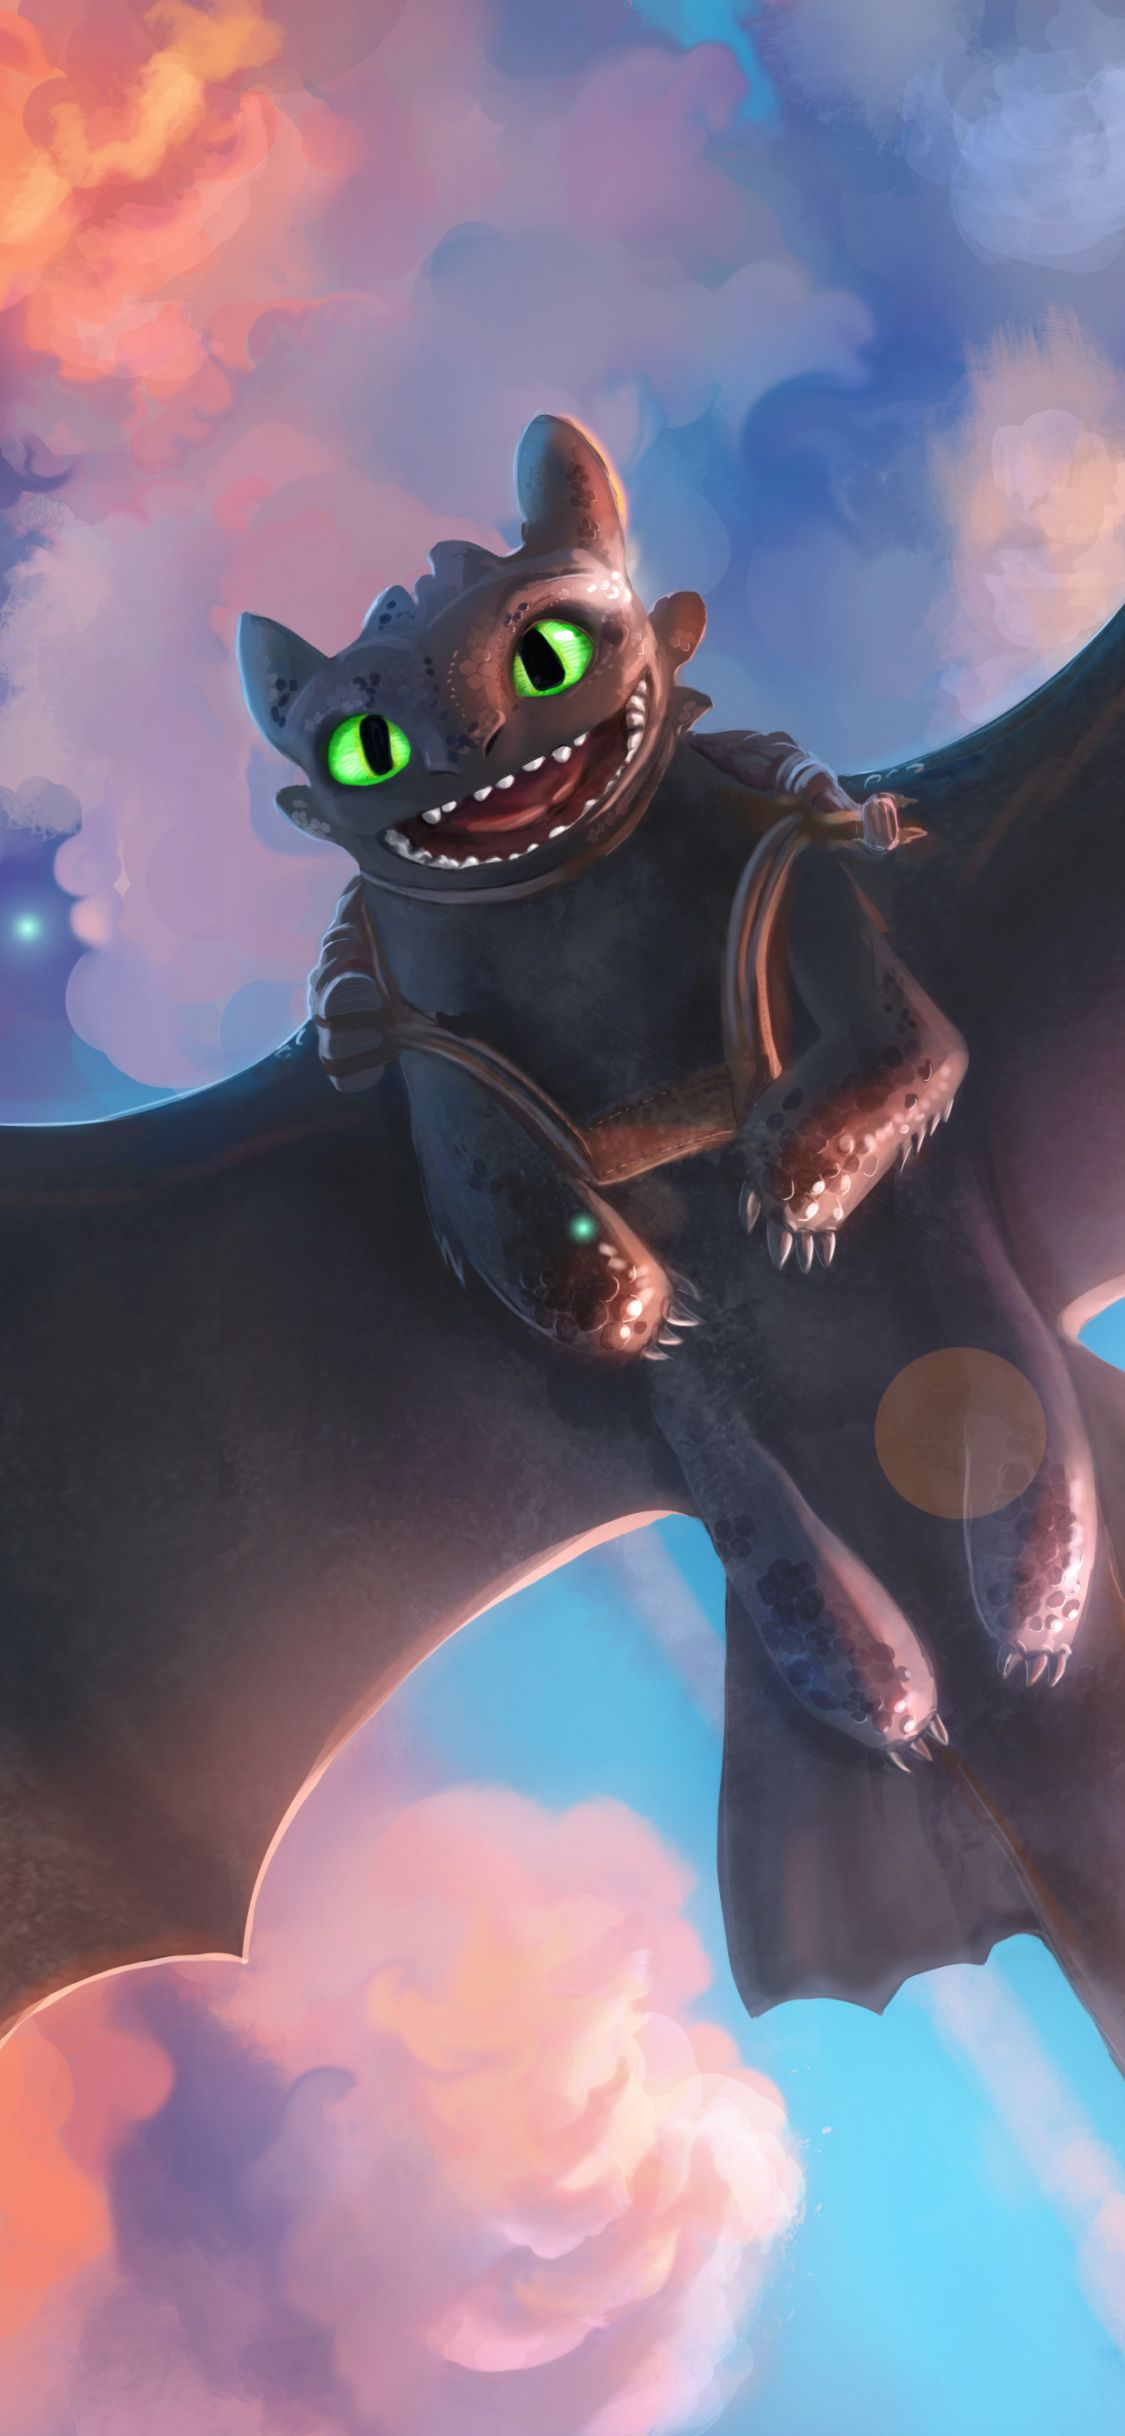 Toothless Night Fury Dragon How To Train Your Dragon 1125x2436 Wallpaper How Train Your Dragon How To Train Your Dragon How To Train Dragon